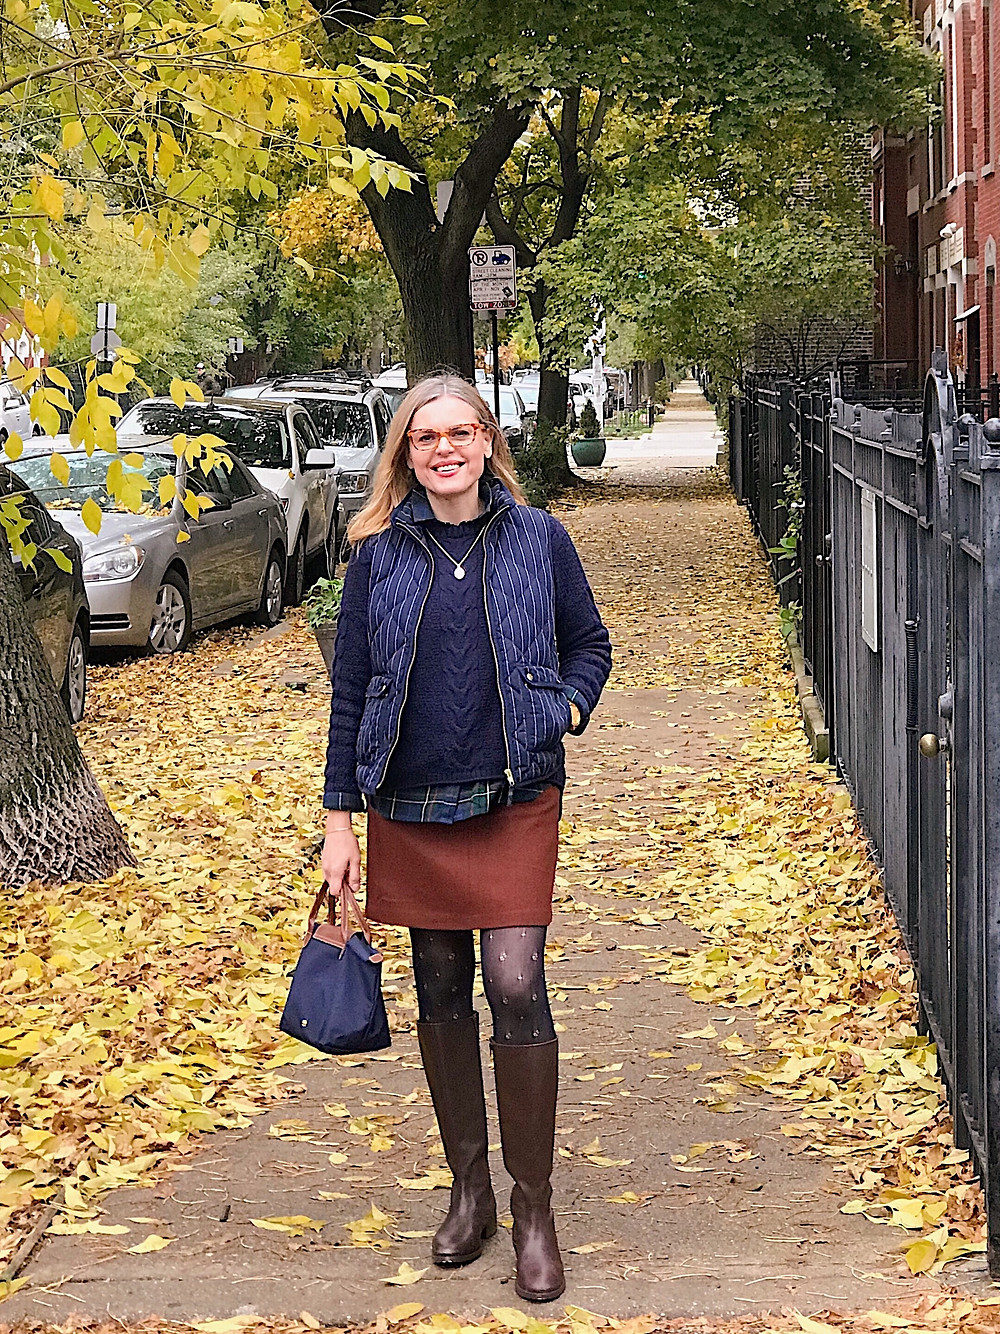 blond woman in brown skirt, navy sweater and vest on a street